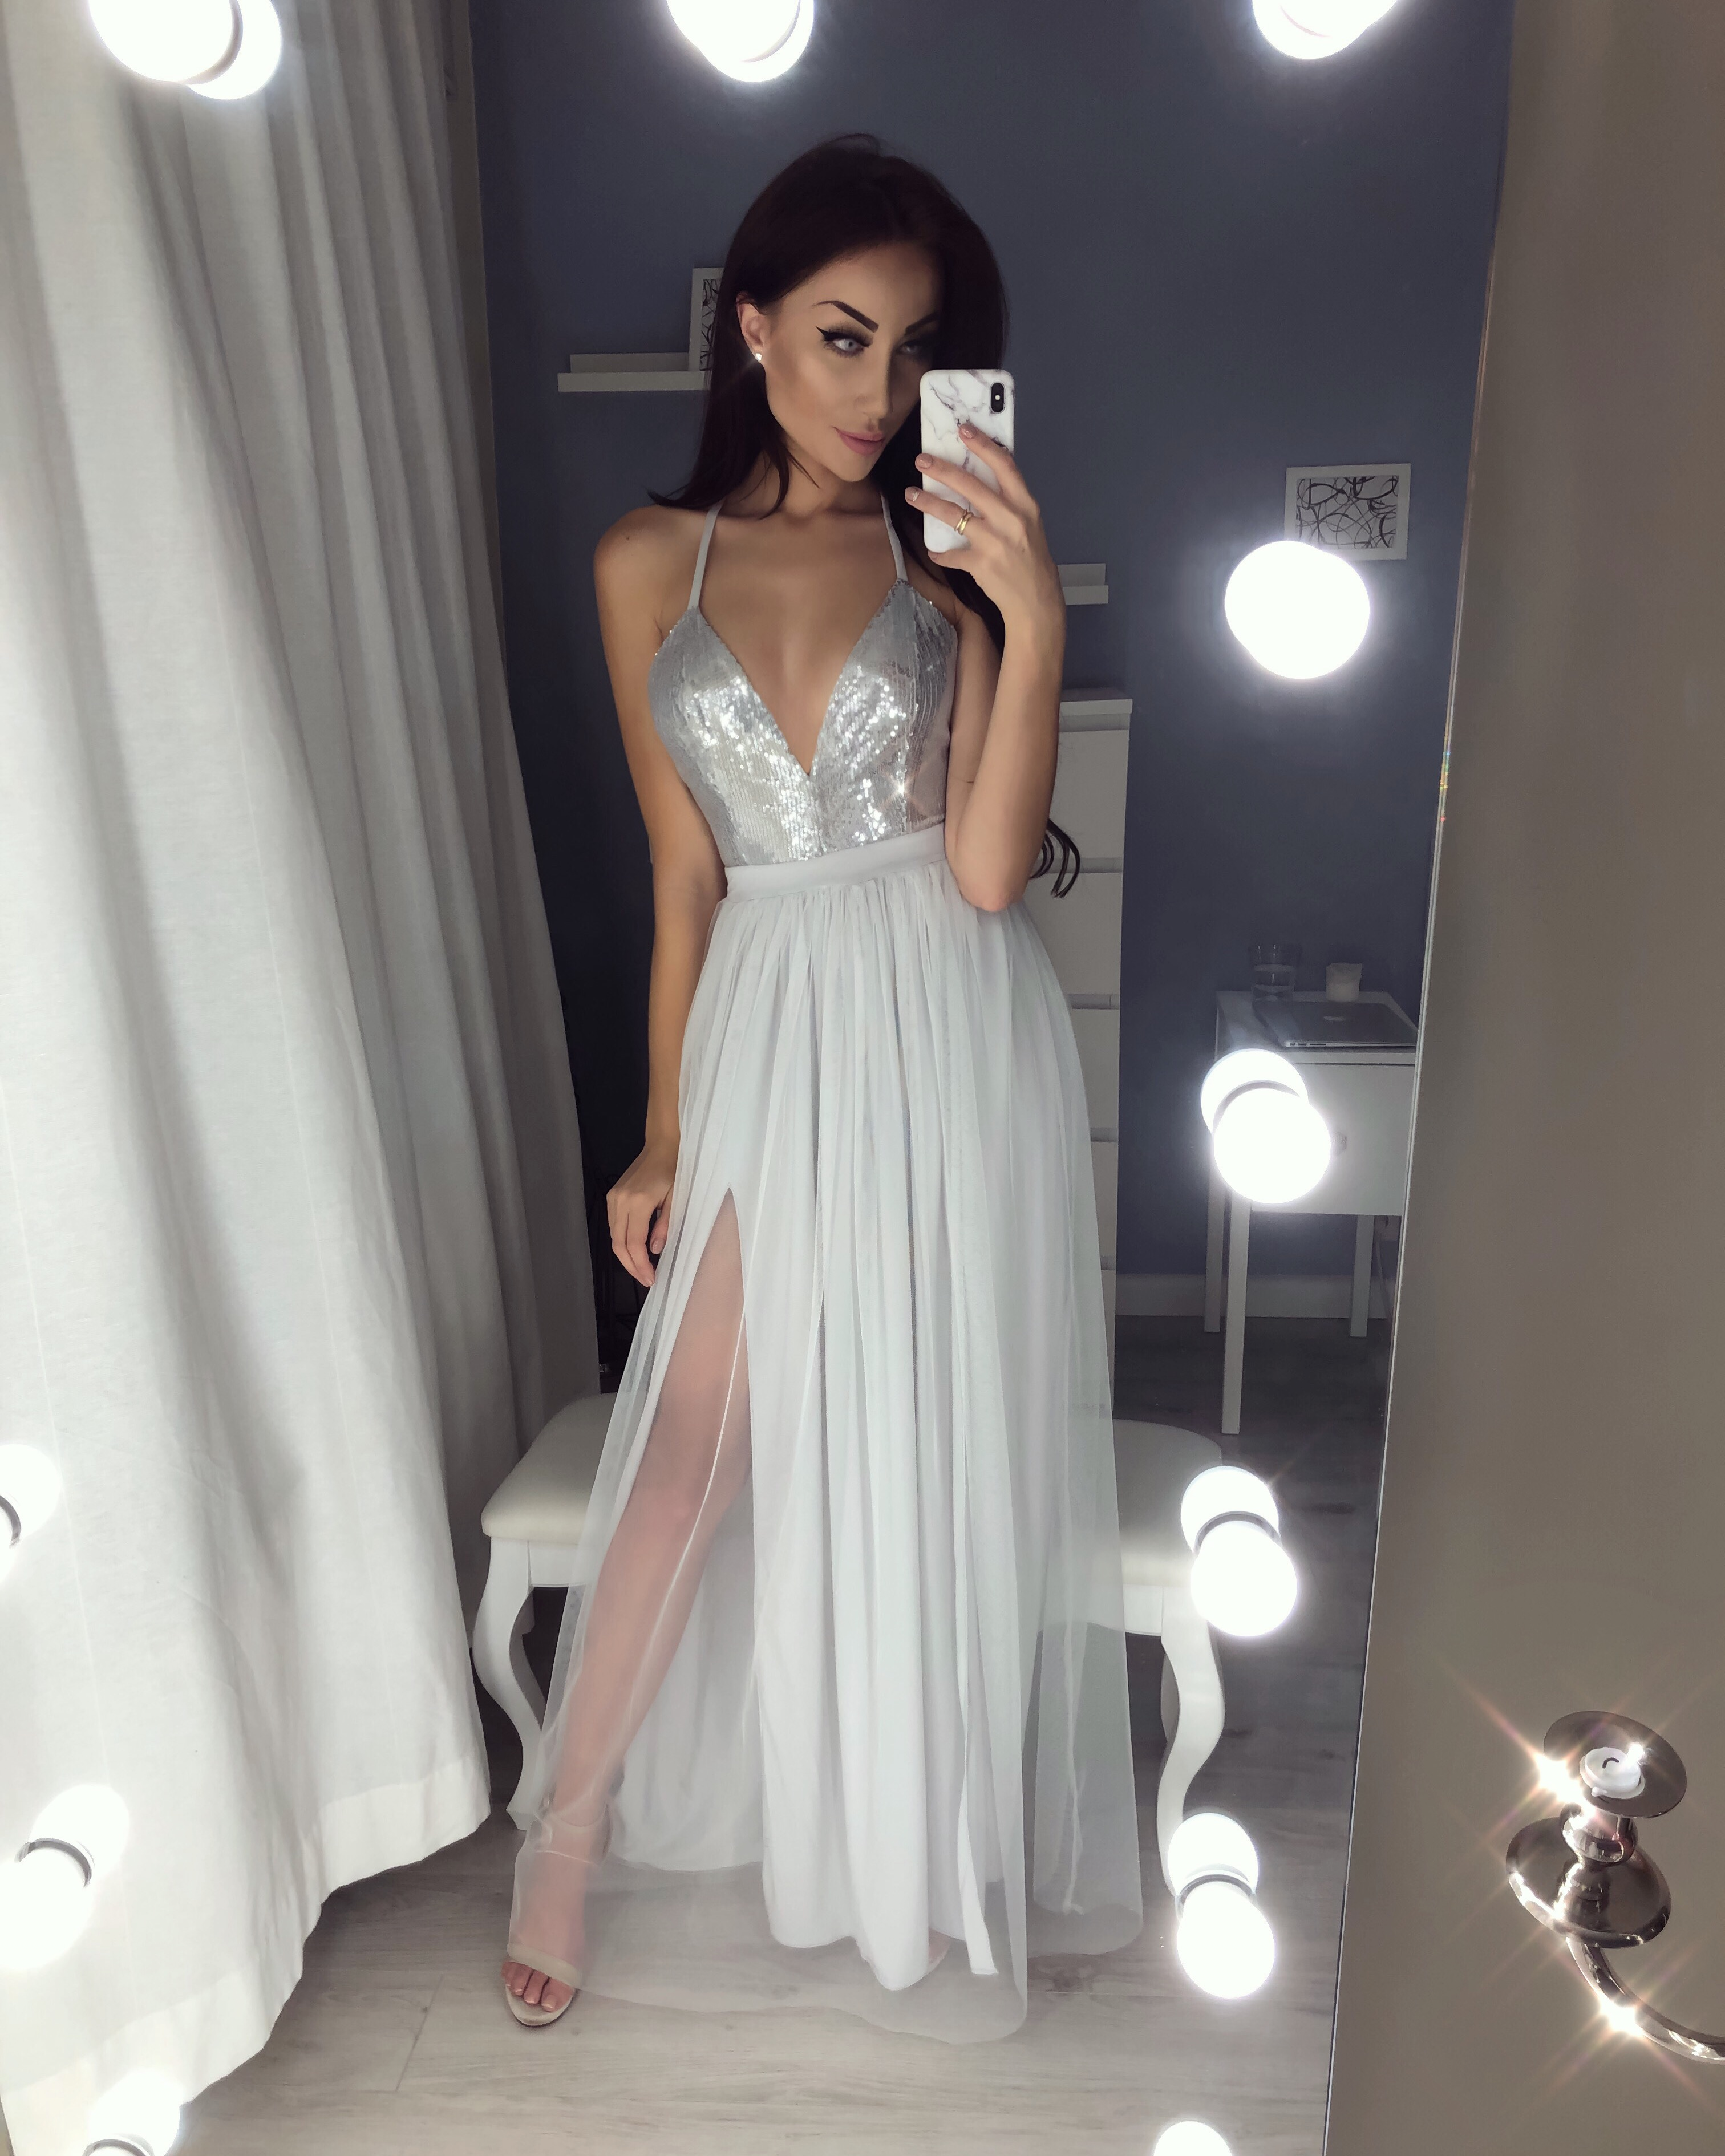 98567dbfdb7c Sexy V-neck Sequin Long Prom Dresses Slit Evening Gowns Tulle Evening Dress  on Storenvy